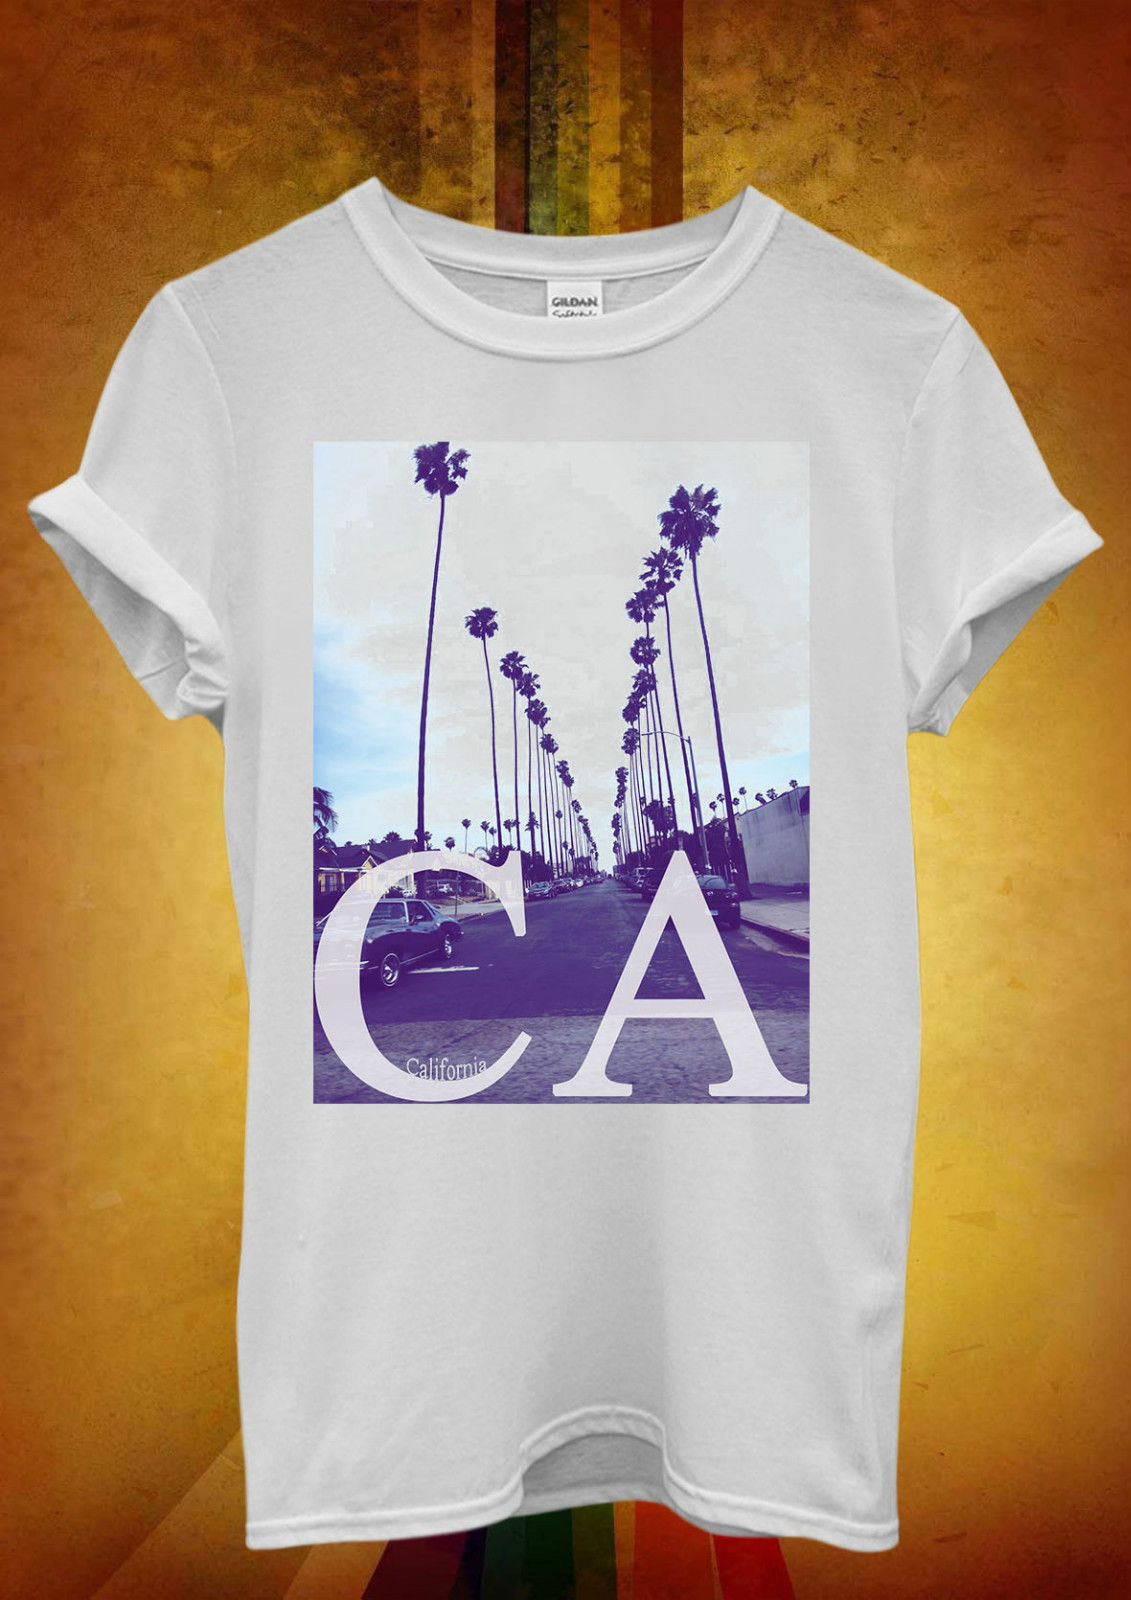 California CA Palm Springs Trees Men Women Unisex T Shirt  Top Vest 740 New T Shirts Funny Tops Tee New Unisex Funny Tops